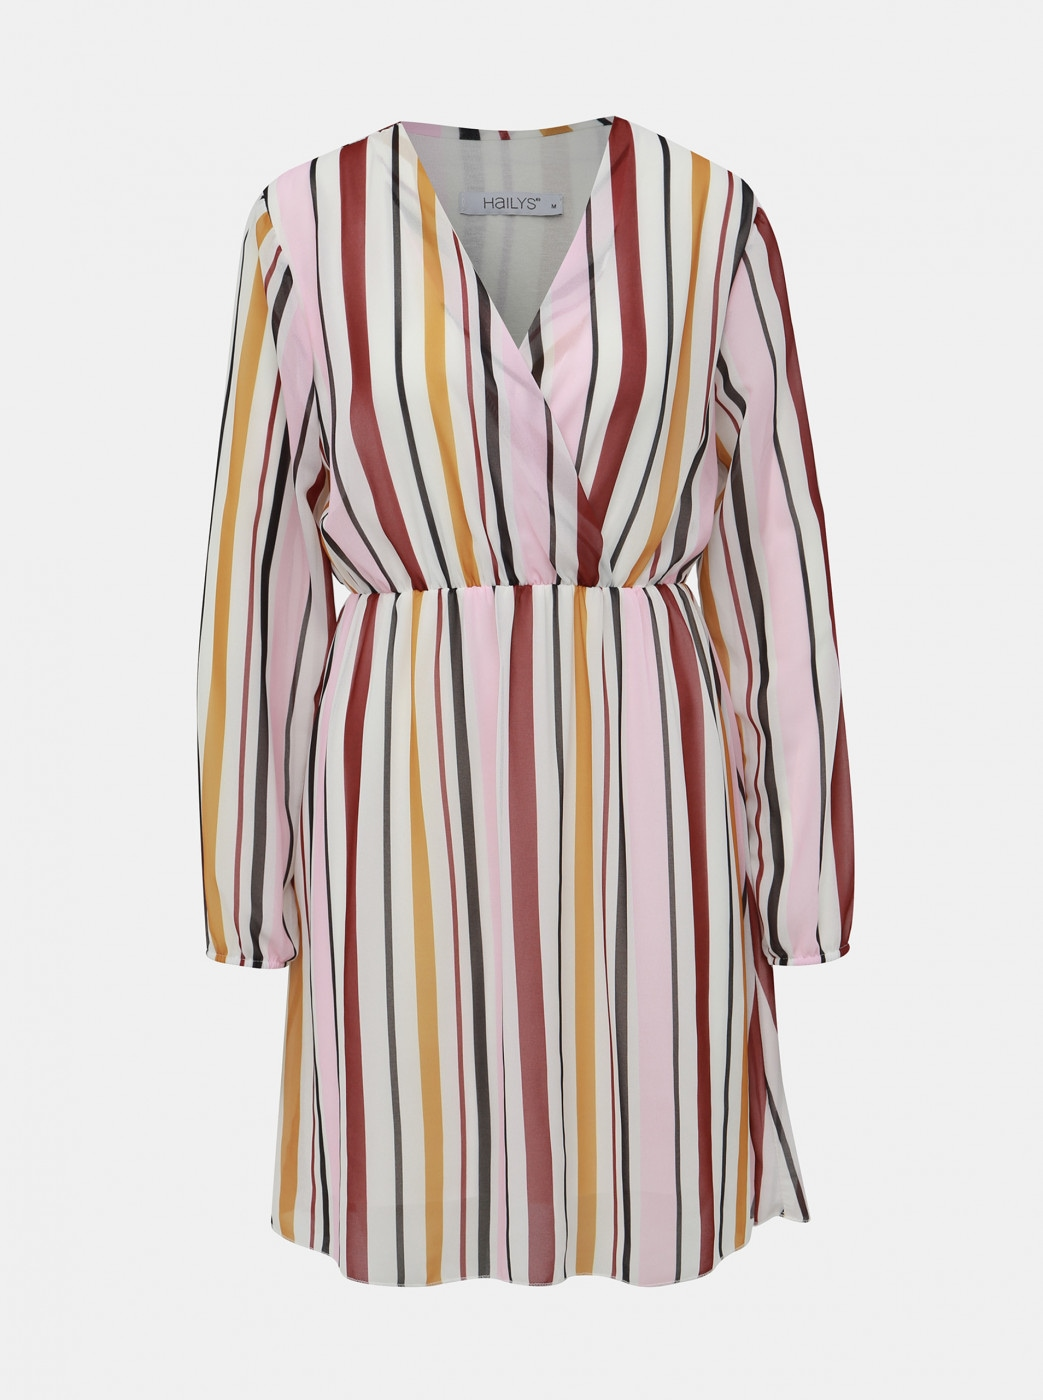 Haily's Lina White-Pink Striped Dress